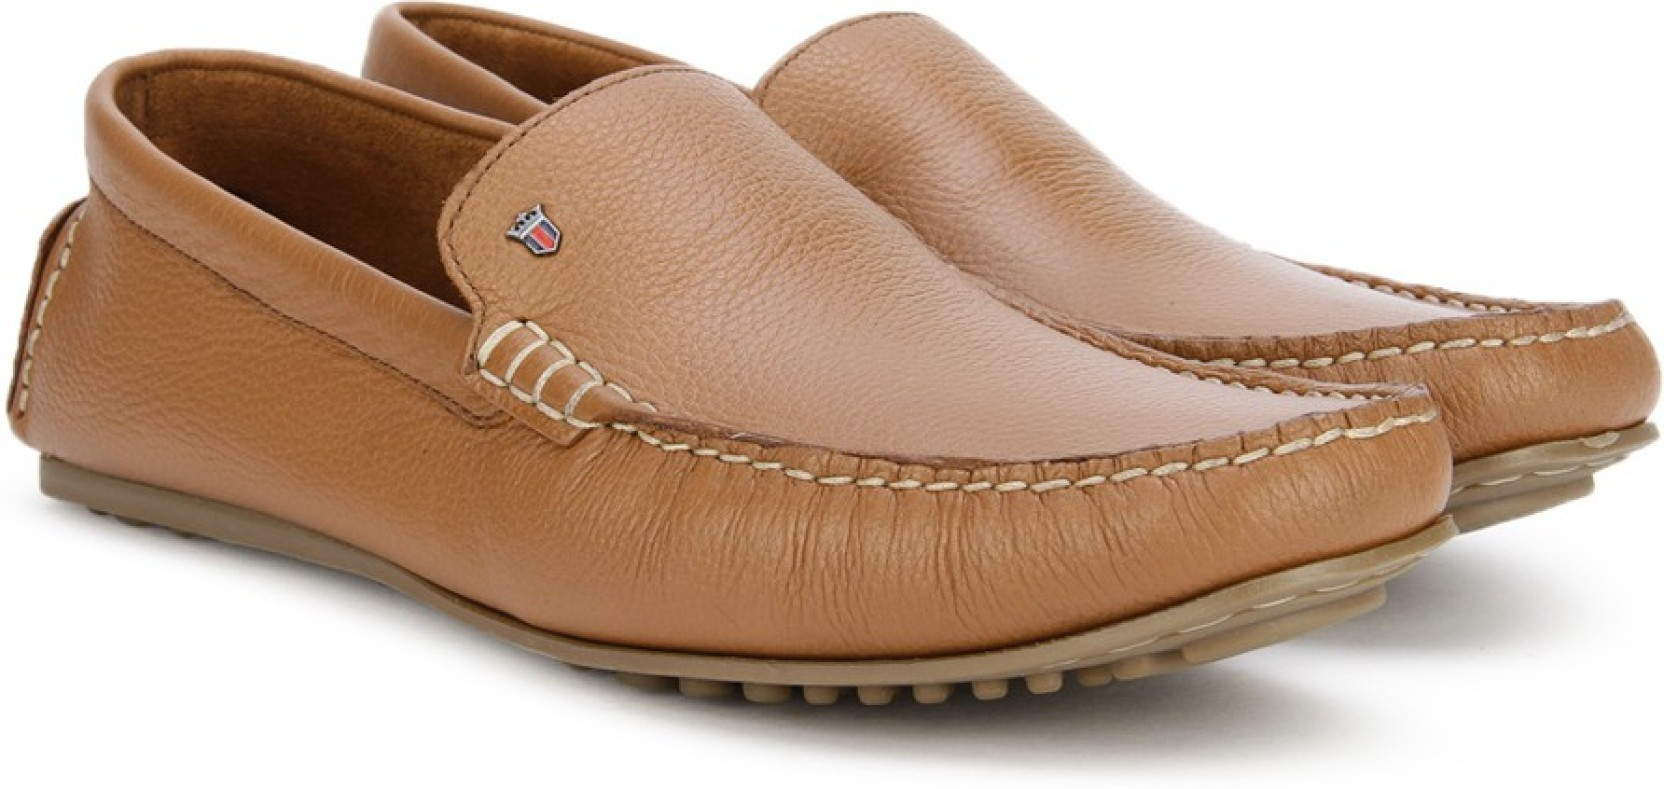 ee882c906a7 LP Louis Philippe Loafer For Men - Buy TAN Color LP Louis Philippe ...